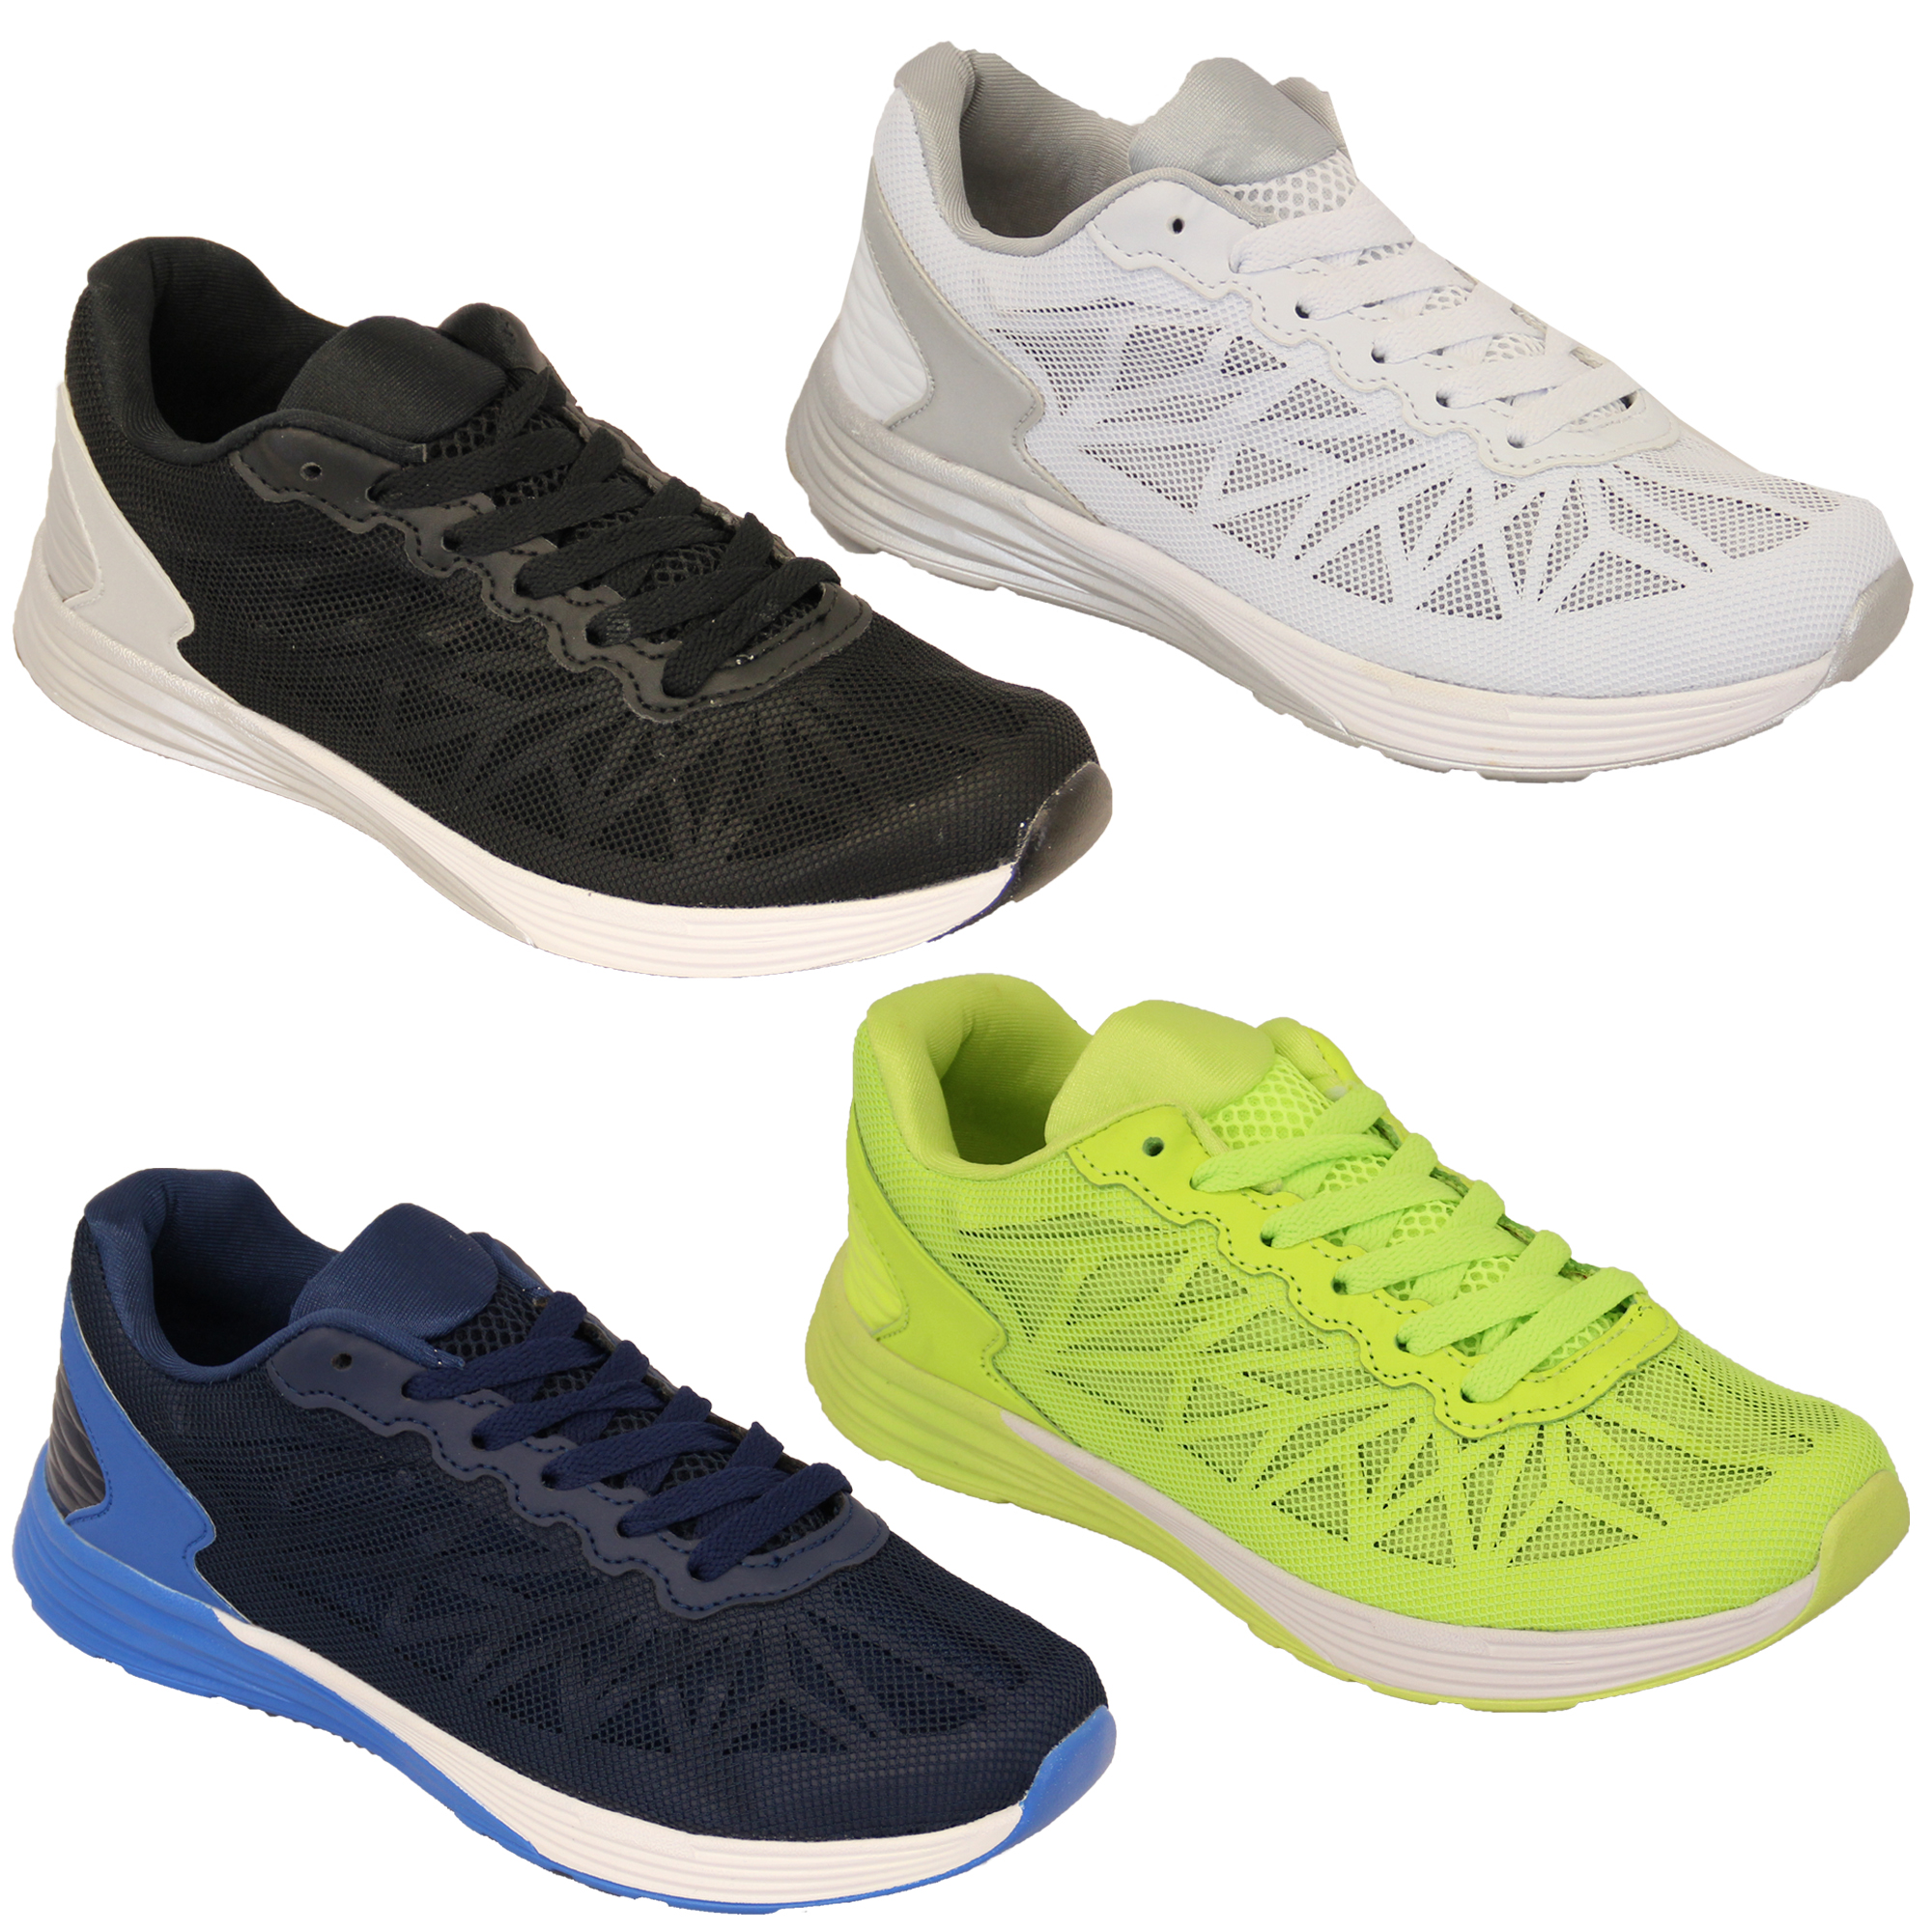 Mens-Trainers-Running-Shoes-Lace-Up-Jogging-Gym-